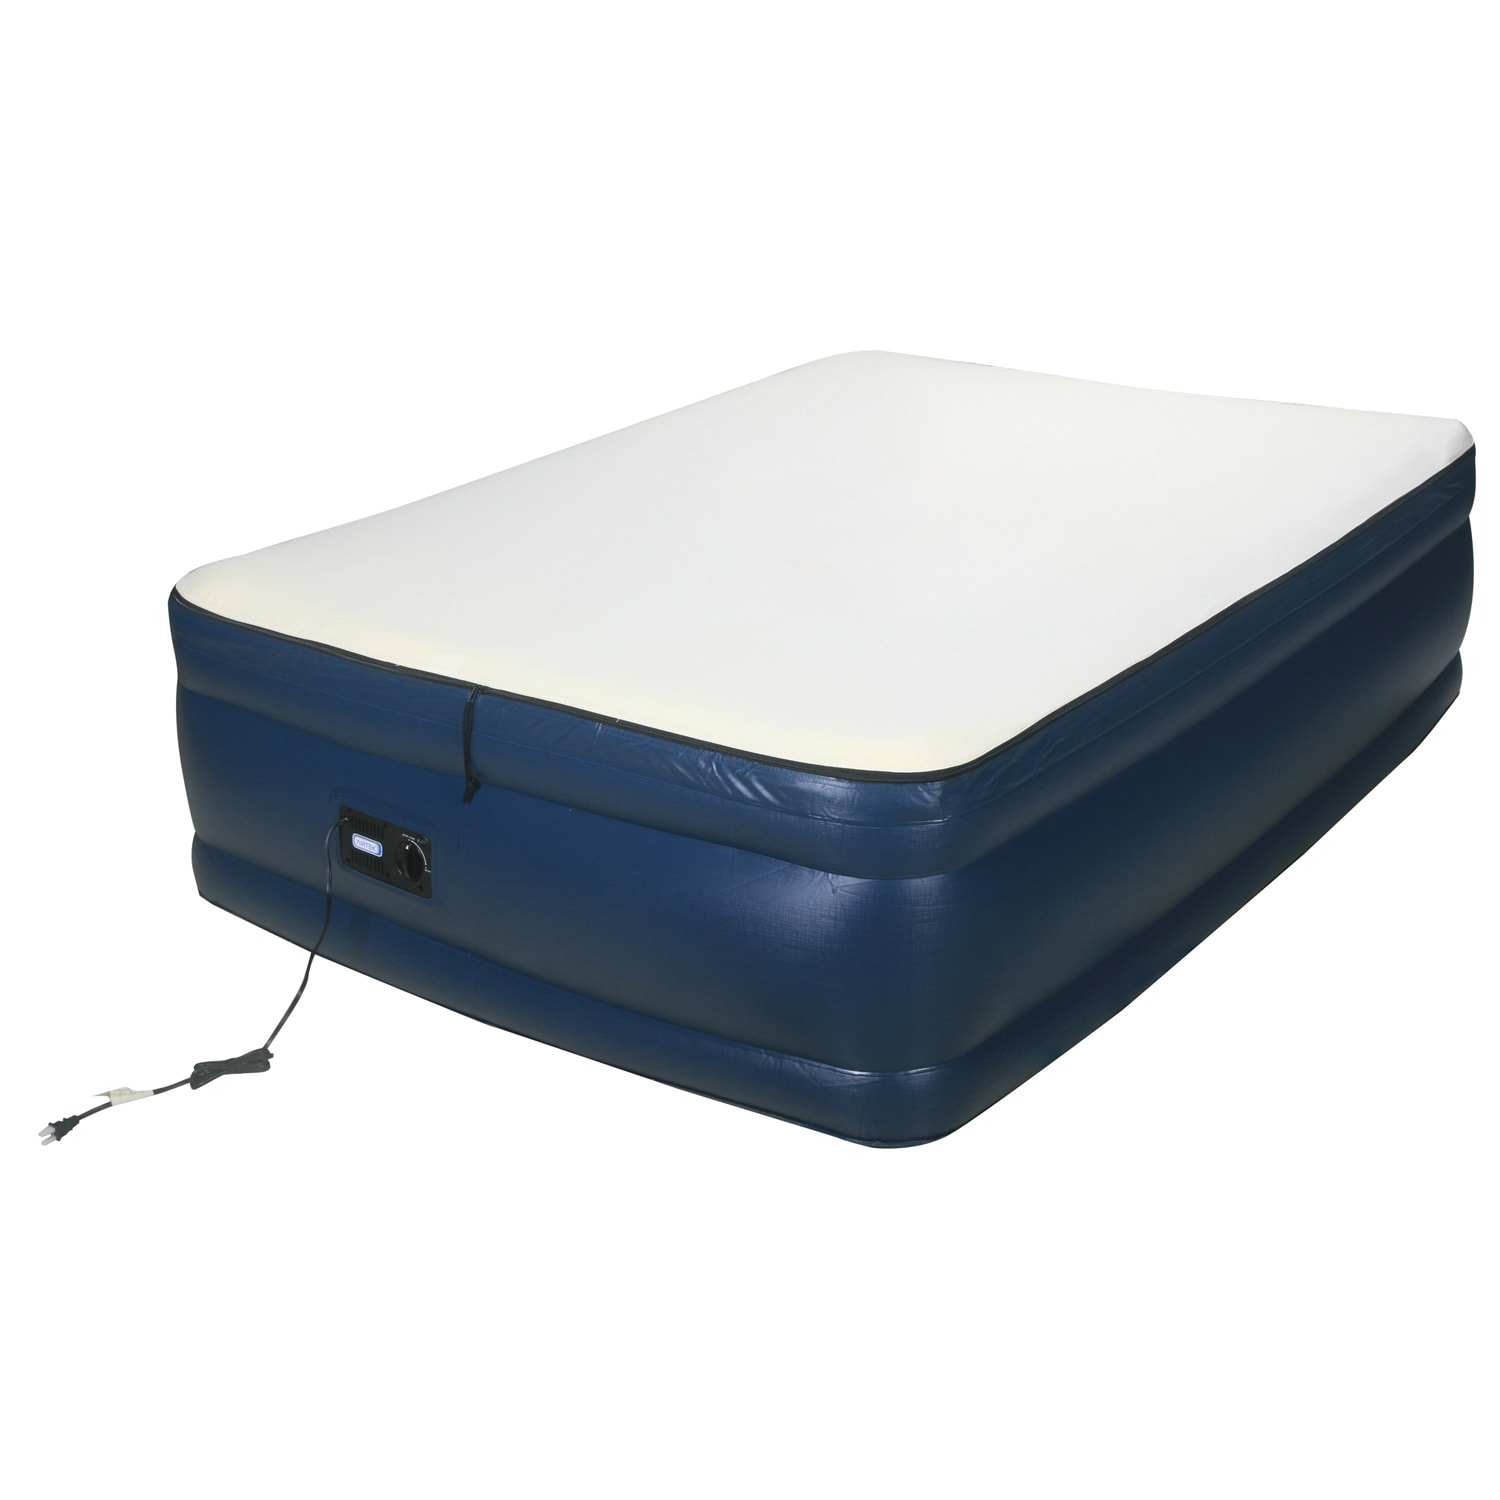 bed simmons lux autos firm raised luxury post lumbar photo mattress of beautyrest air queen